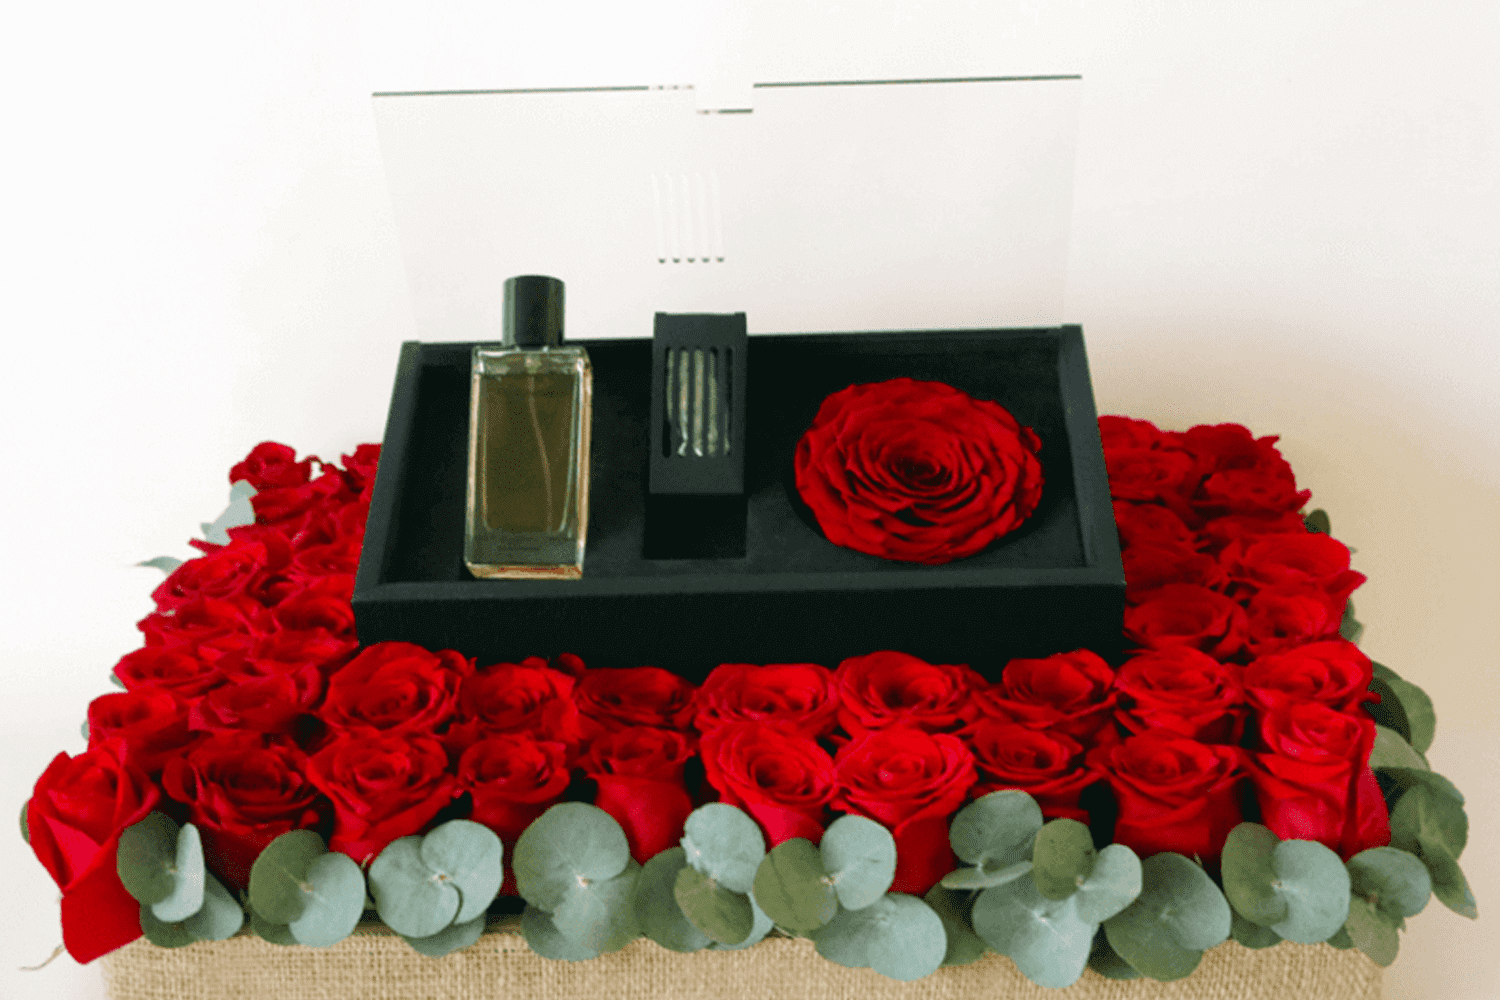 Revealing red perfume and red rose arrangement